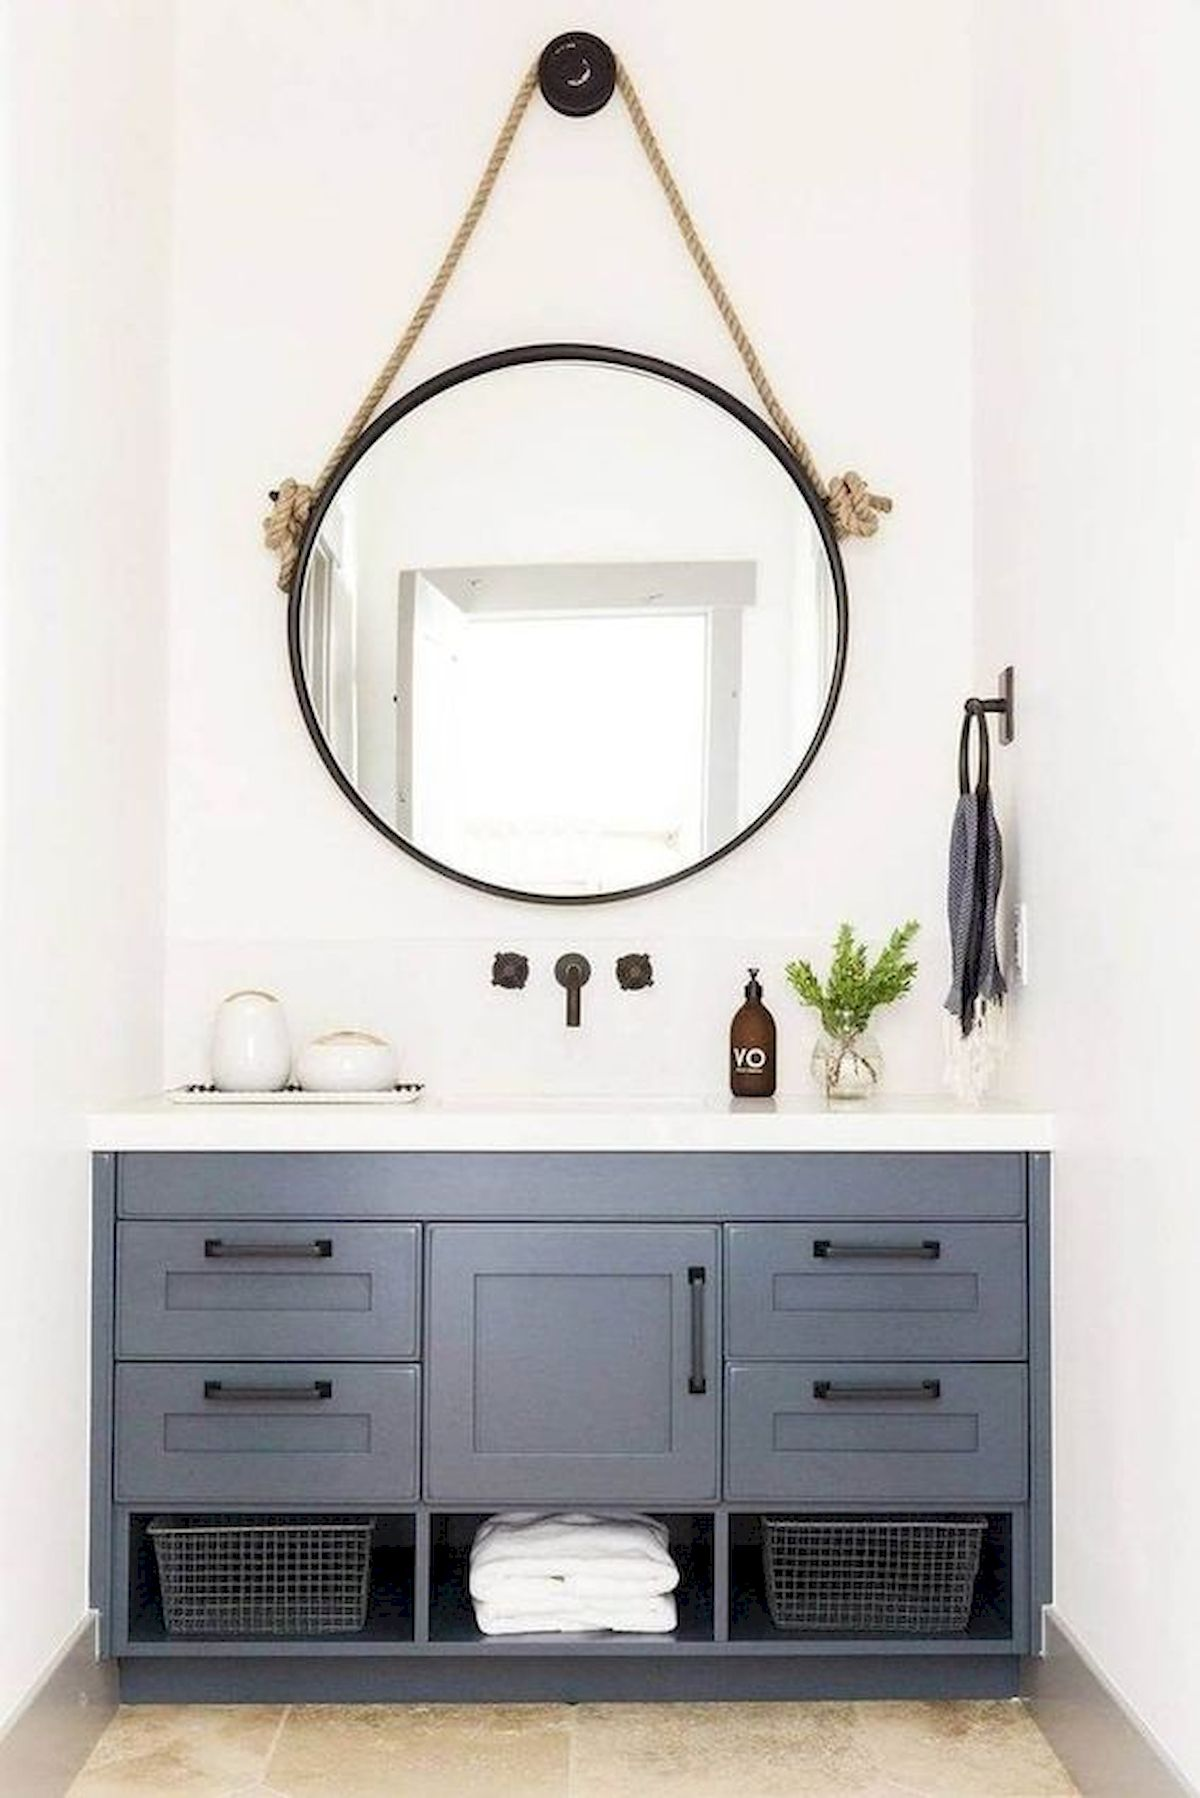 50 Best DIY Storage Design Ideas To Maximize Your Small Bathroom Space (50)